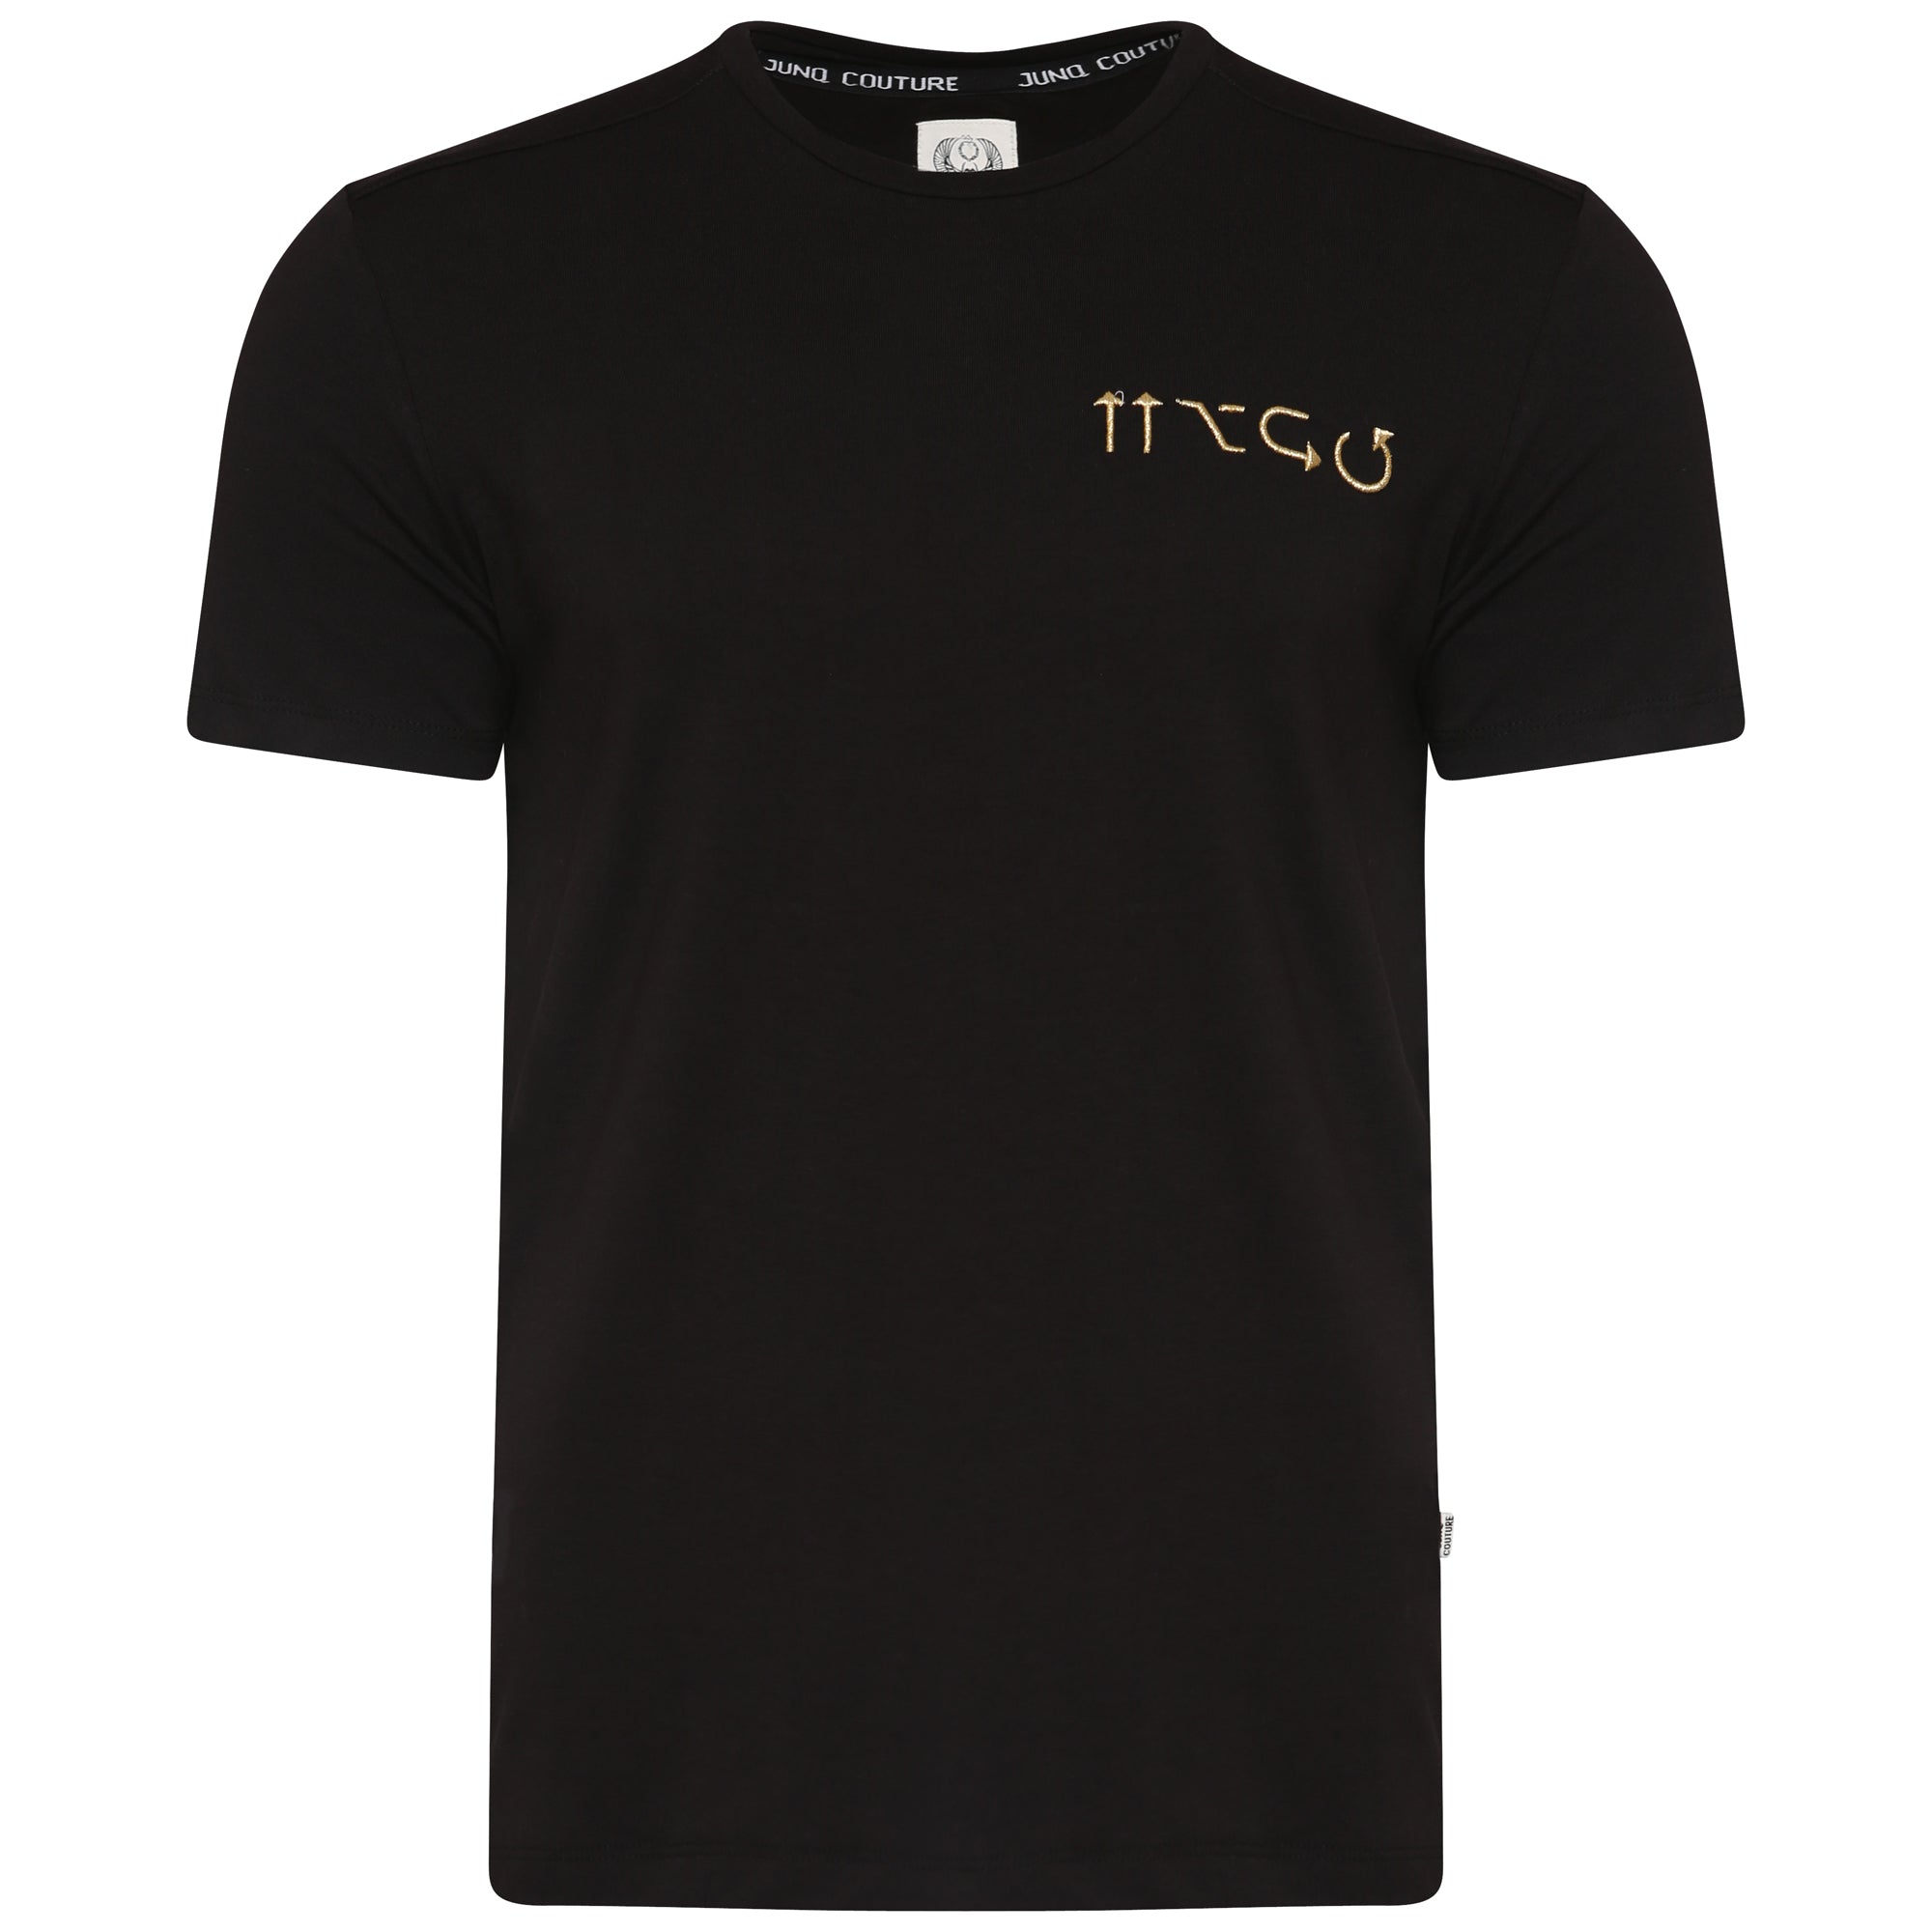 Style: Asta Luxury T-Shirt - Black - Junq Couture